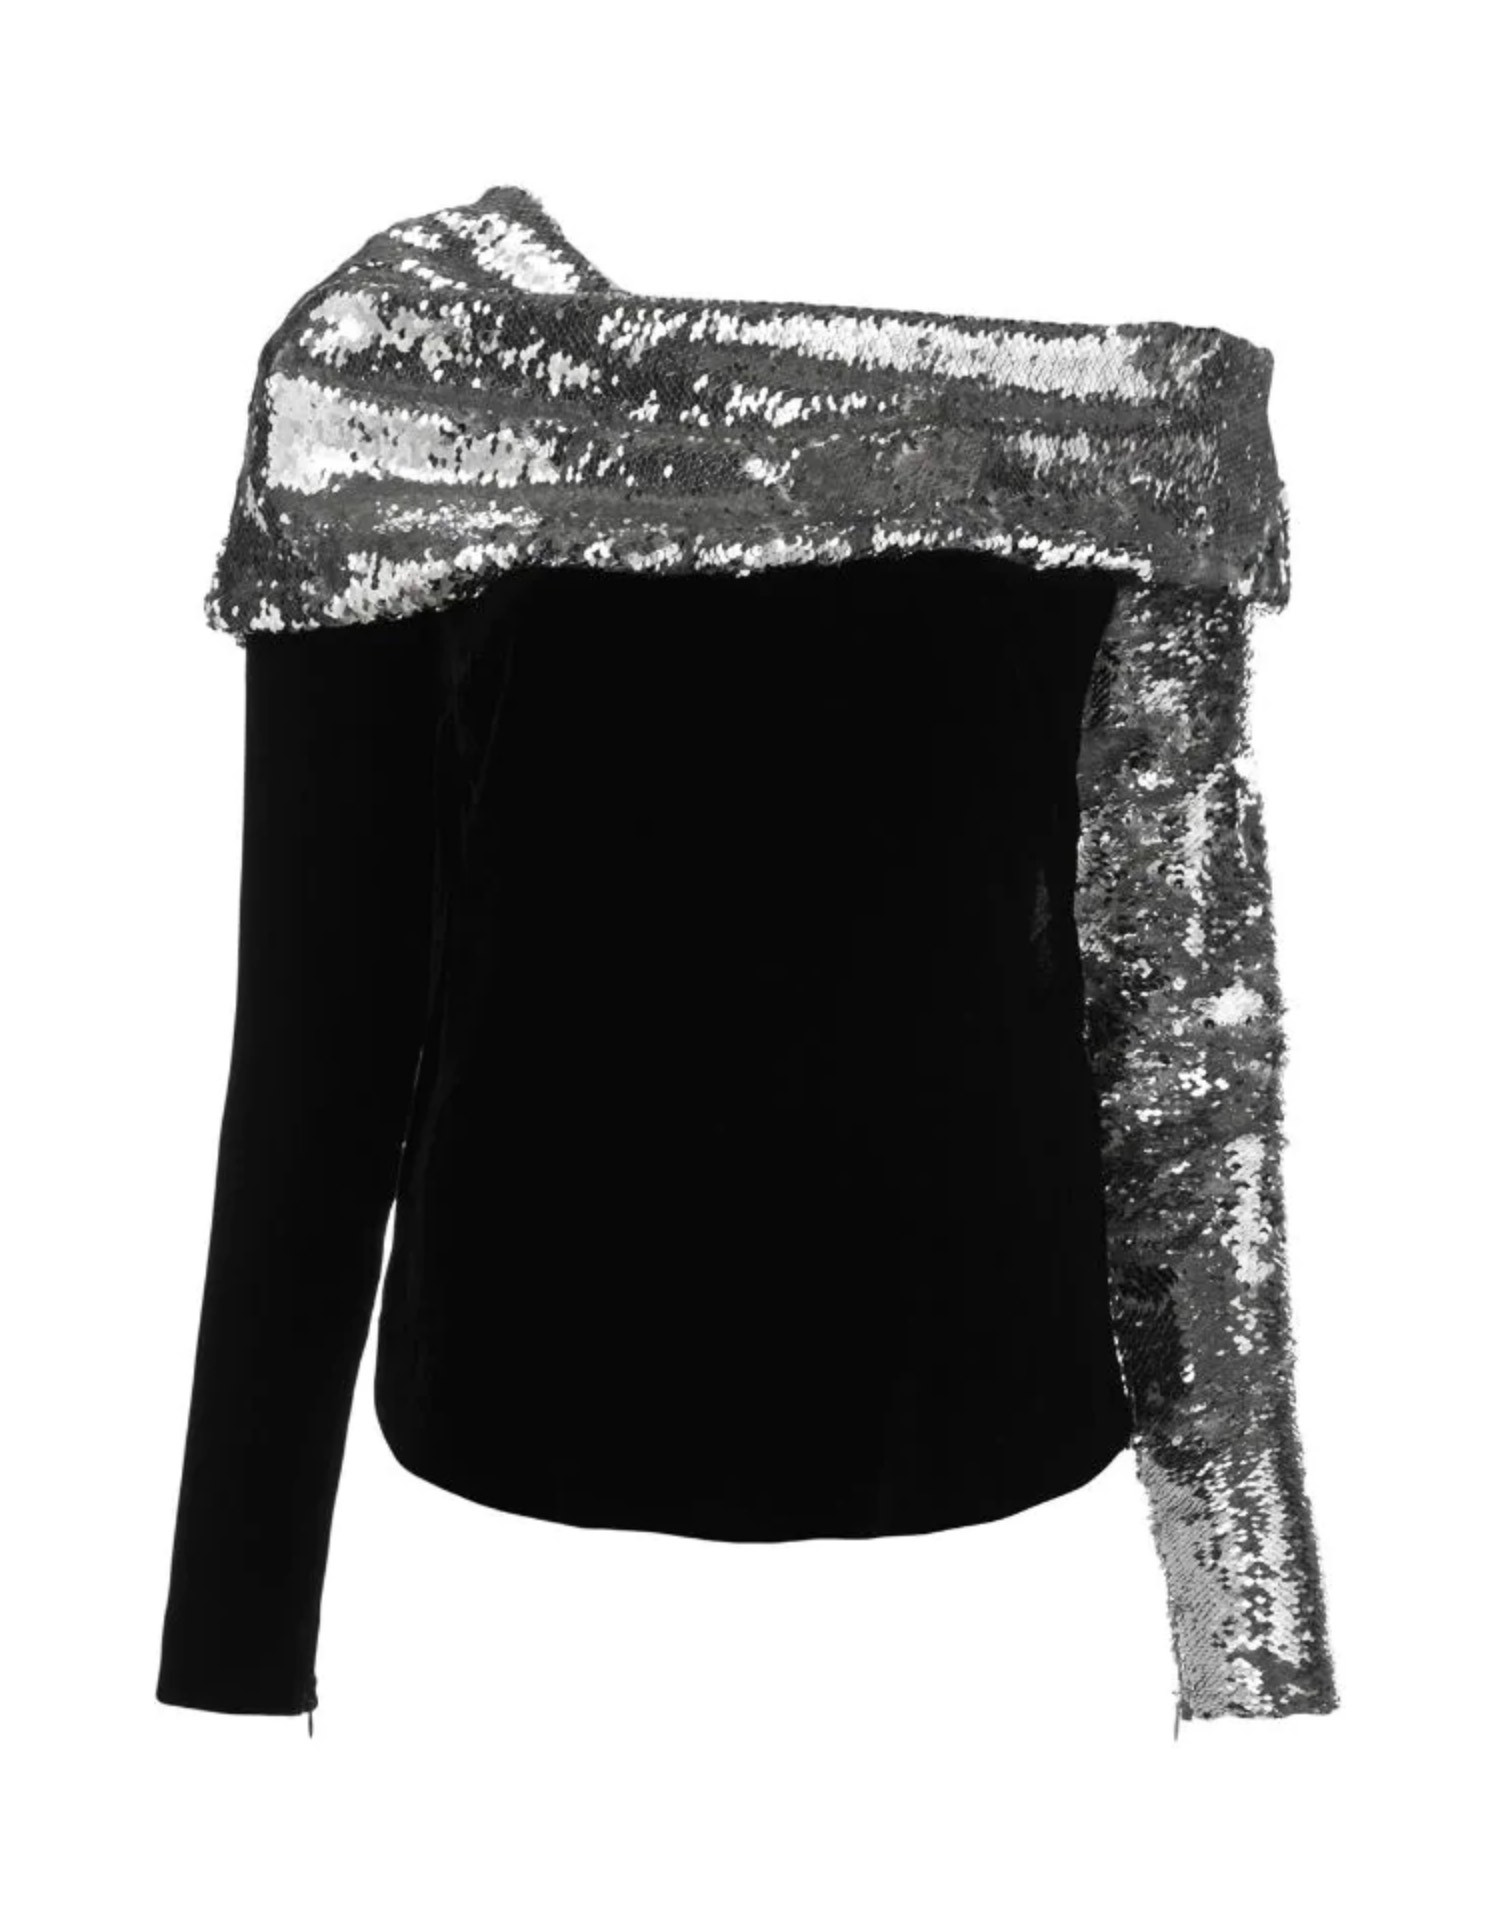 MONSE Sequin Embroidered Top on Model Front View